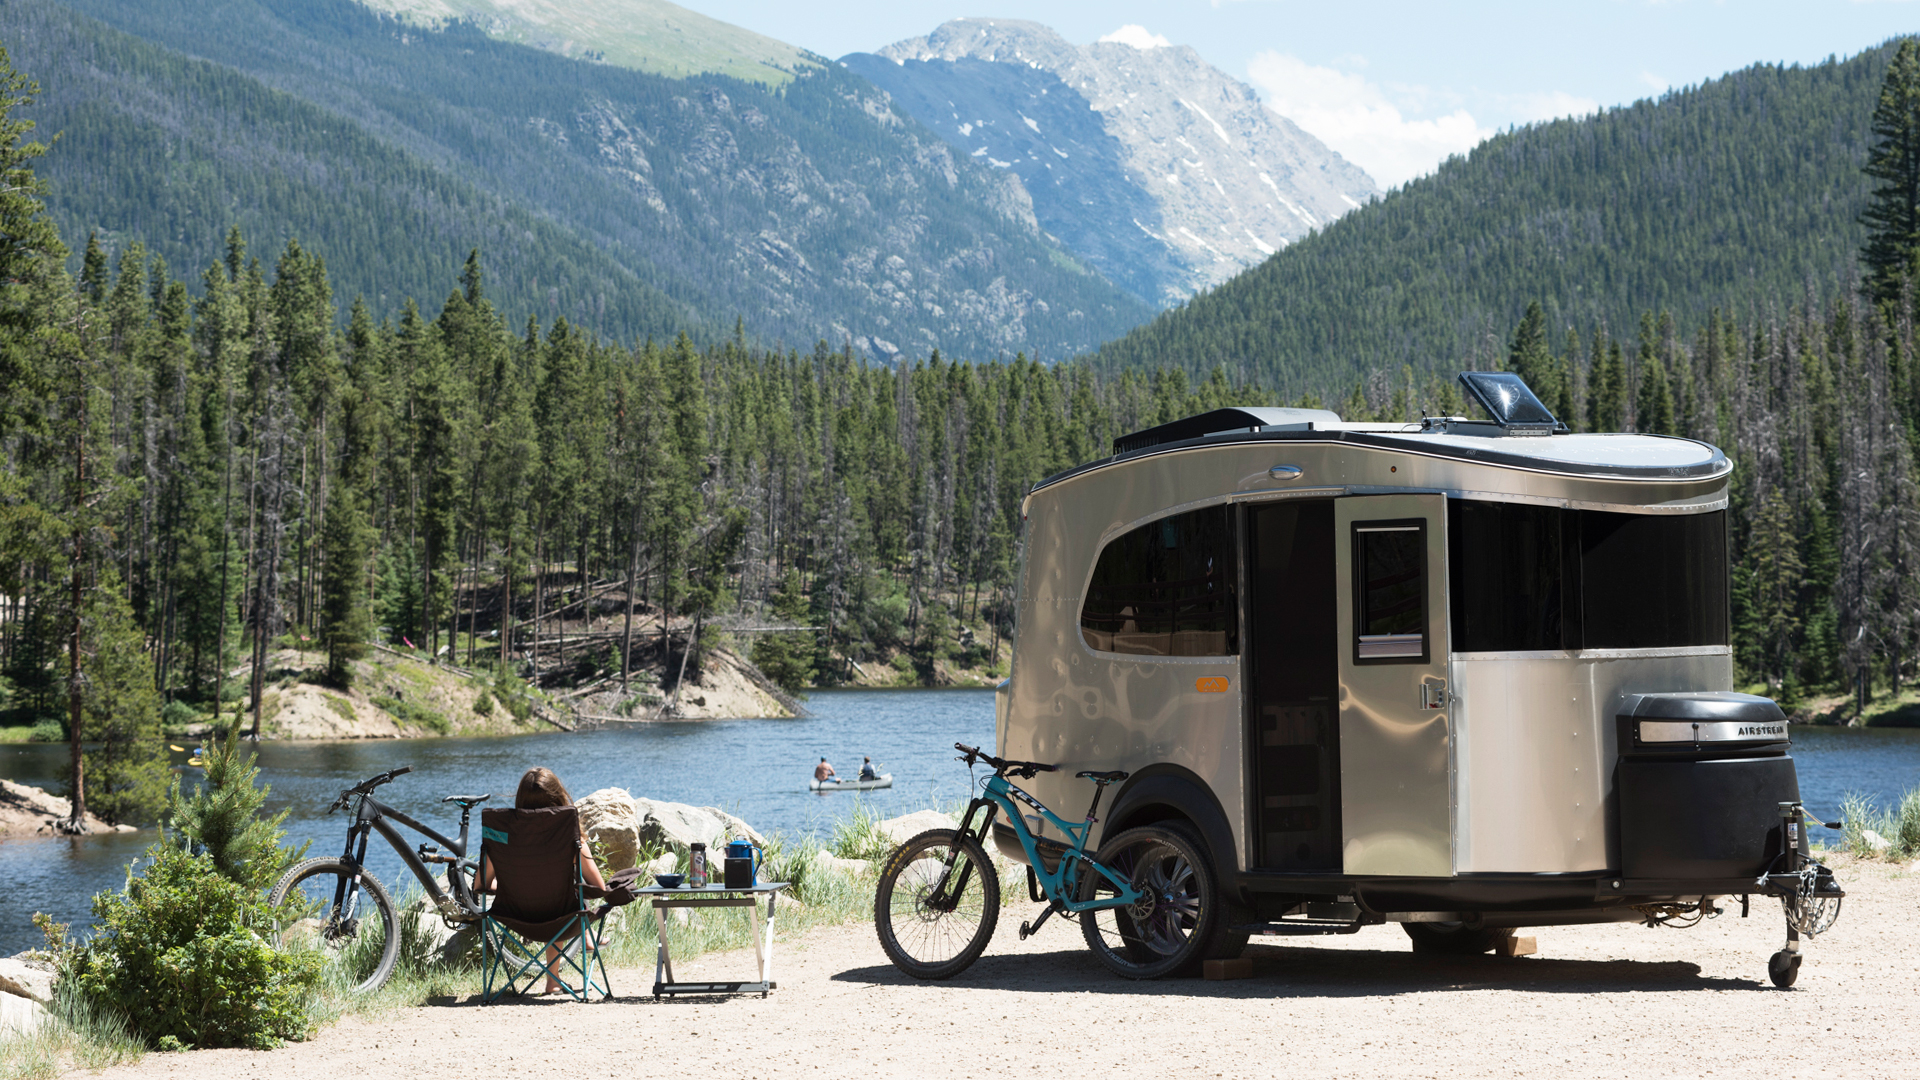 Airstream-Basecamp-Lifestyle-Lake-and-Mountains